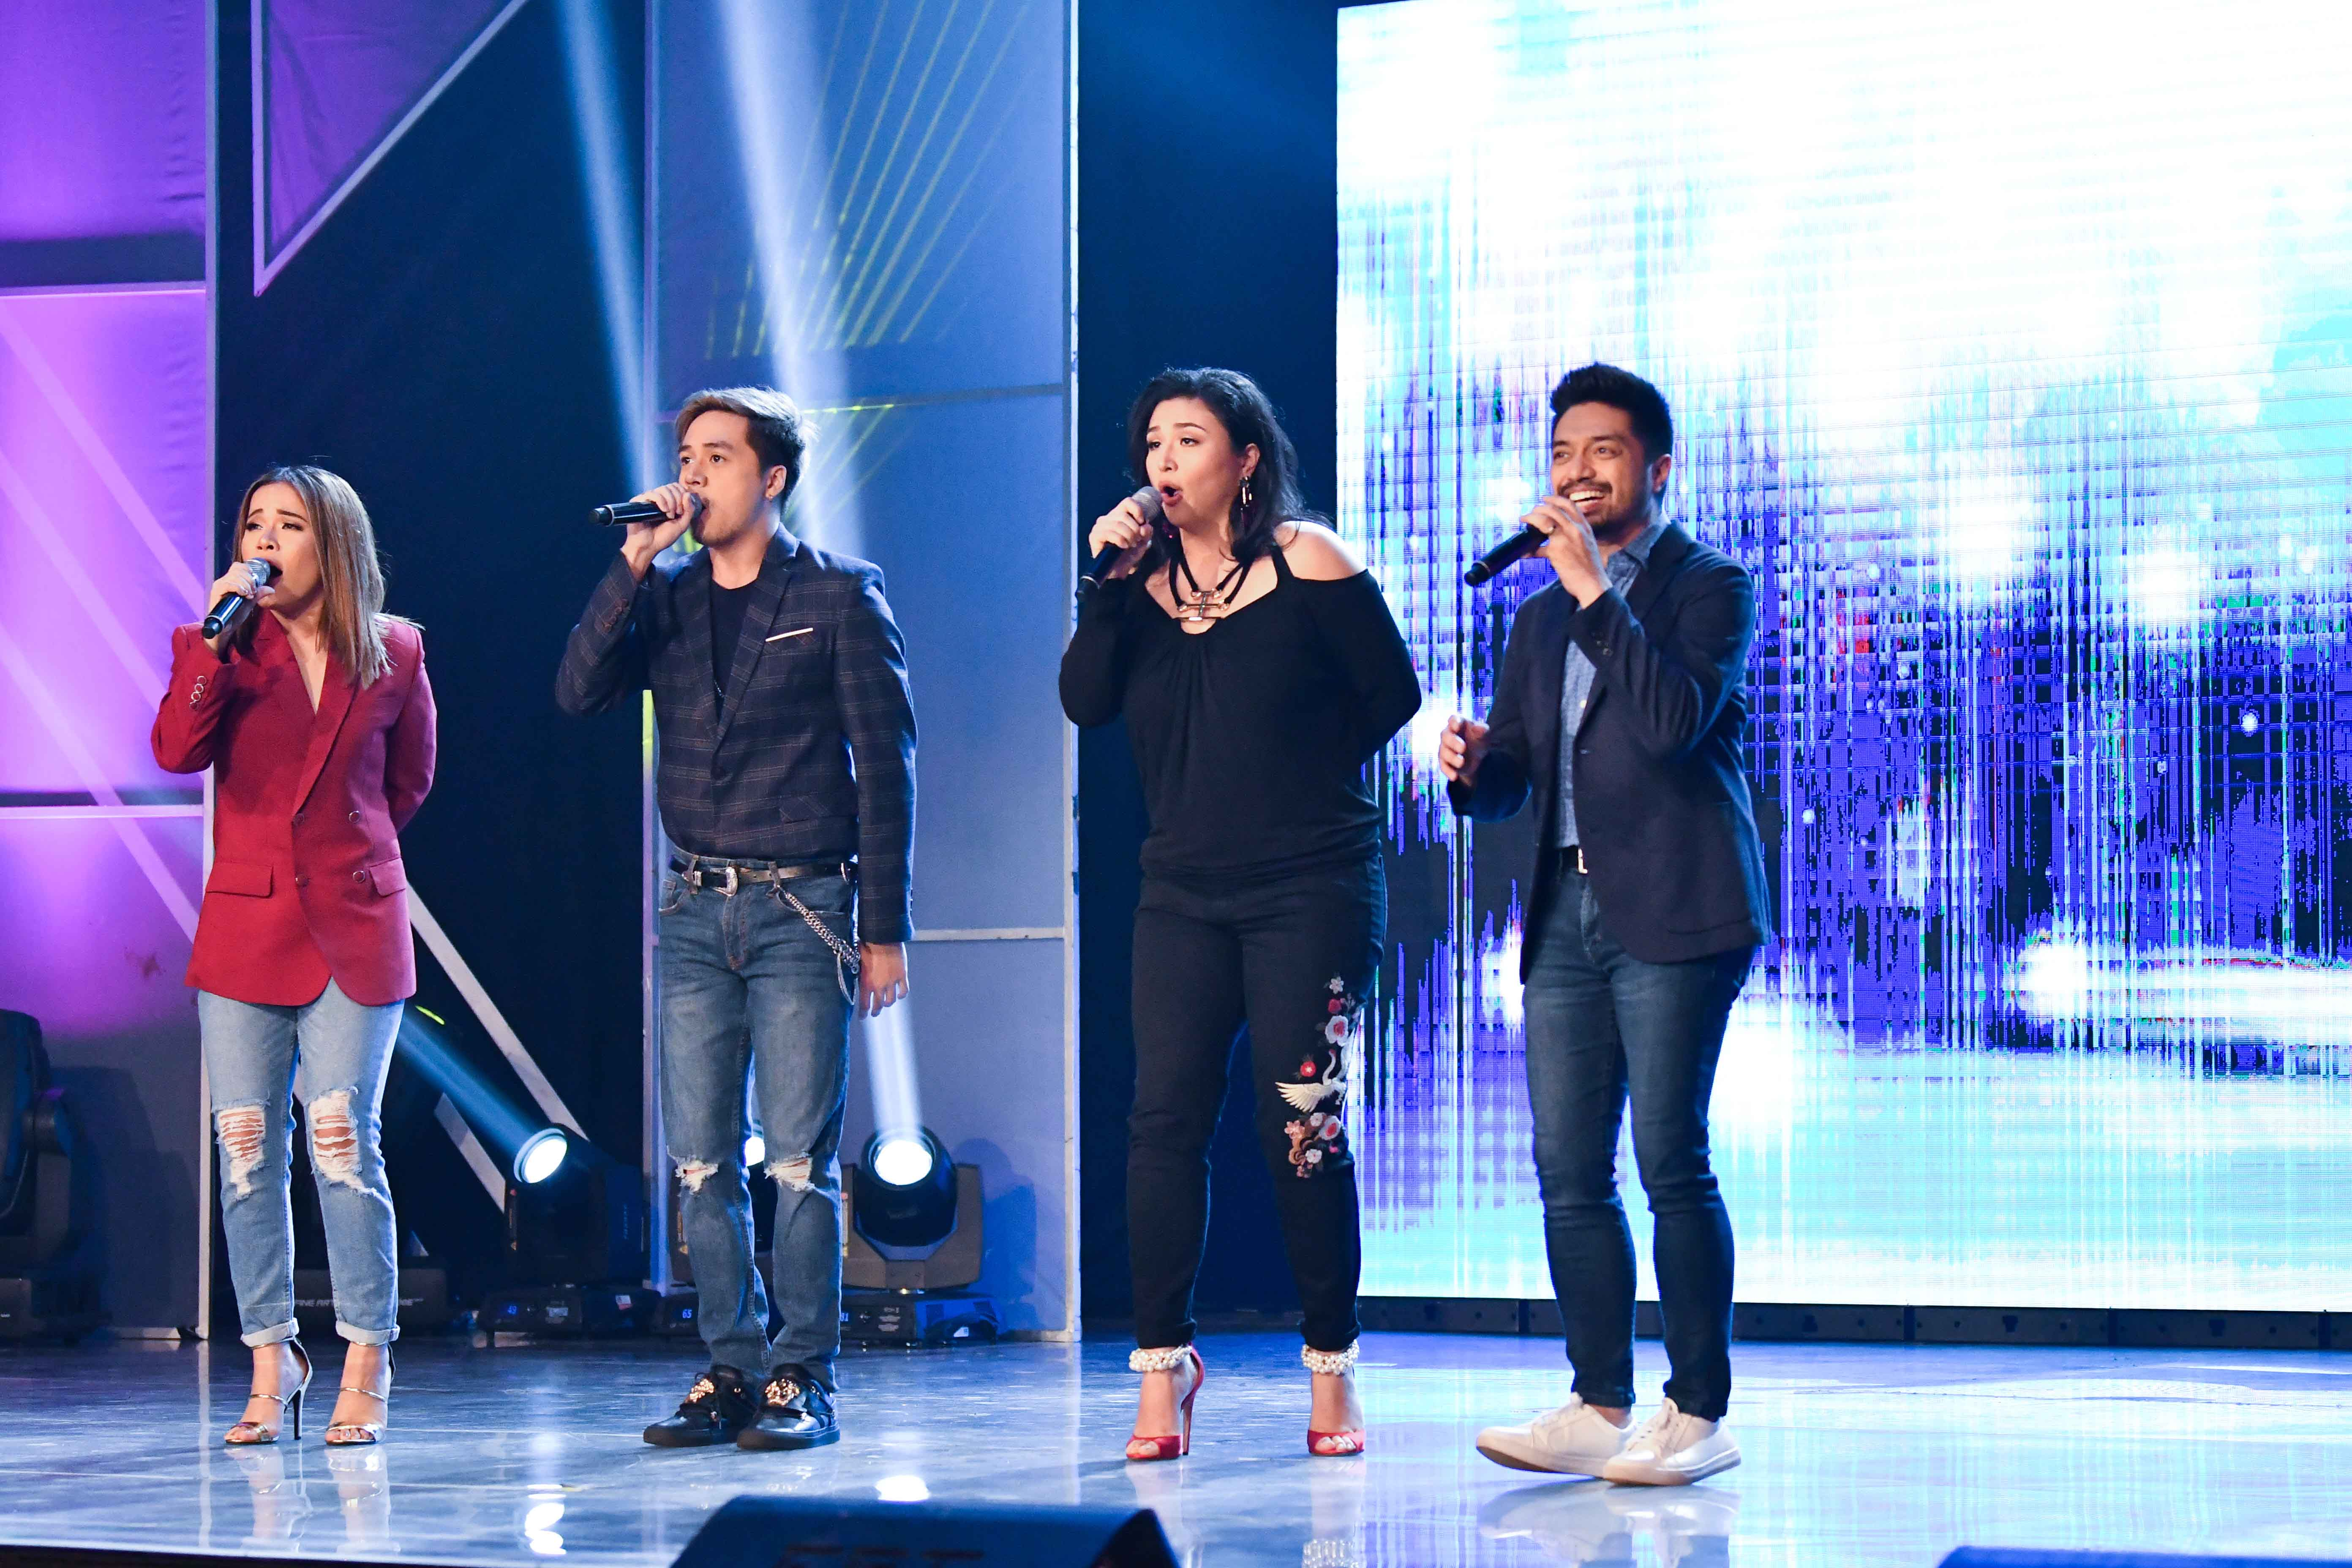 Nyoy Volante, Radha, Sam Concepcion and Klarisse de Guzman fire up the audience with a medley of inspiring anthems